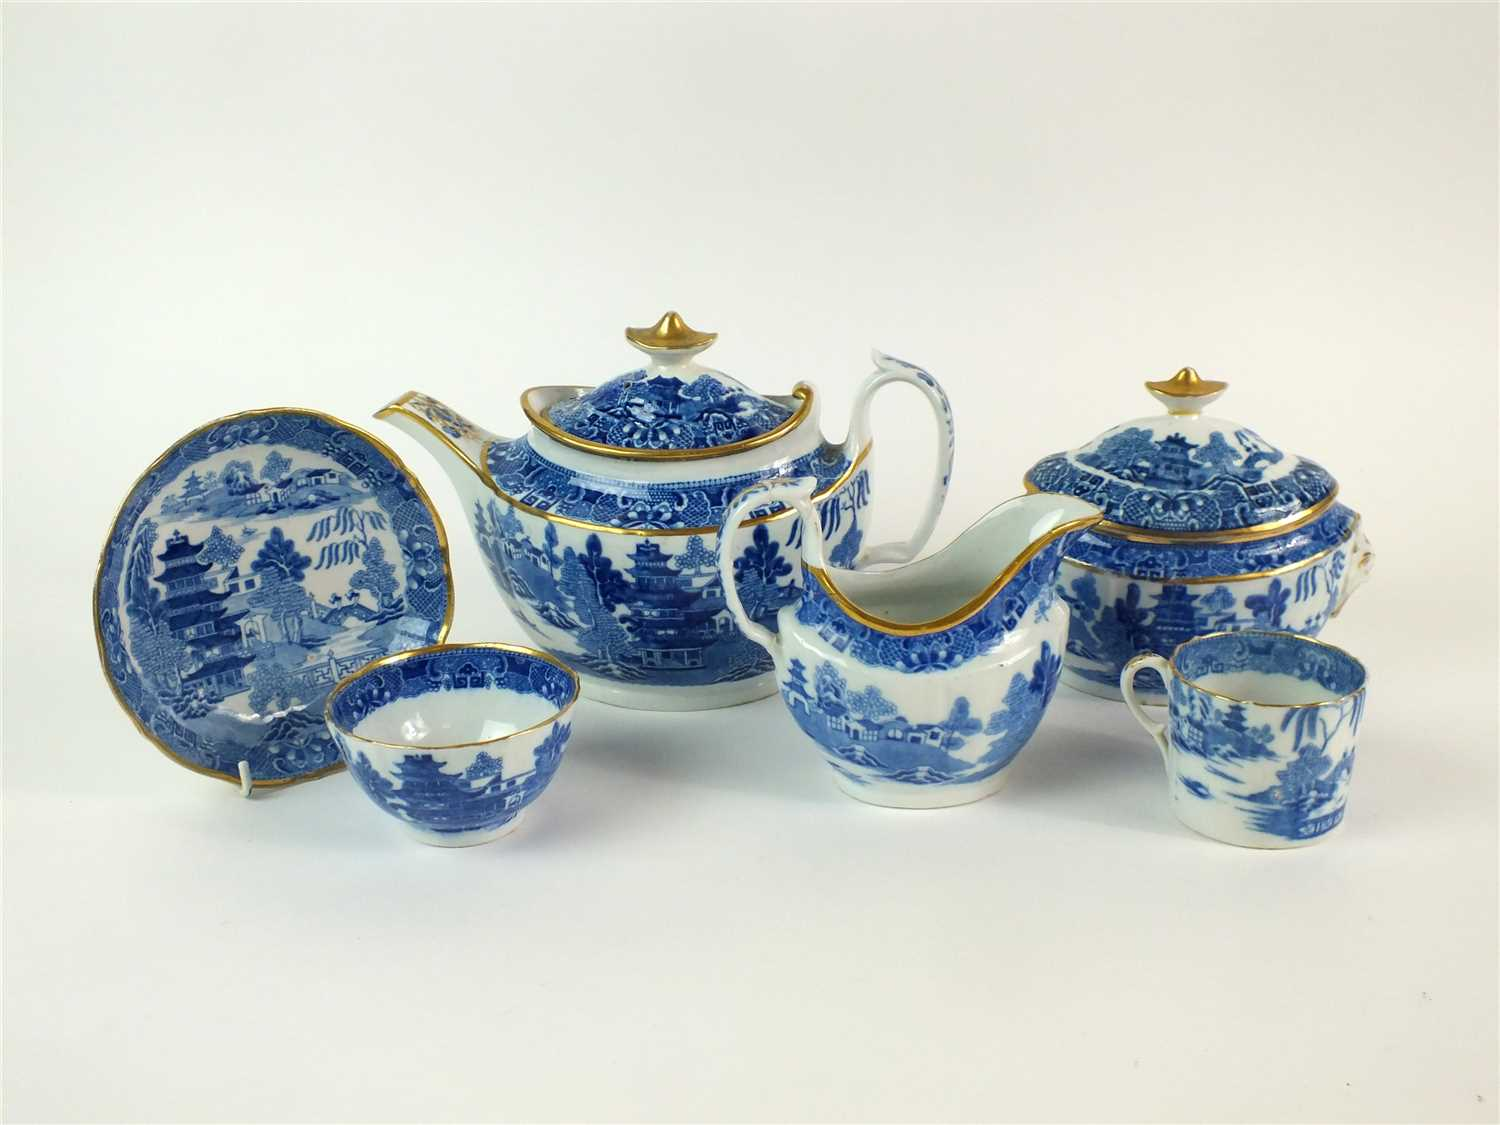 Lot 35-A Caughley/Coalport tea service in the Pagoda pattern